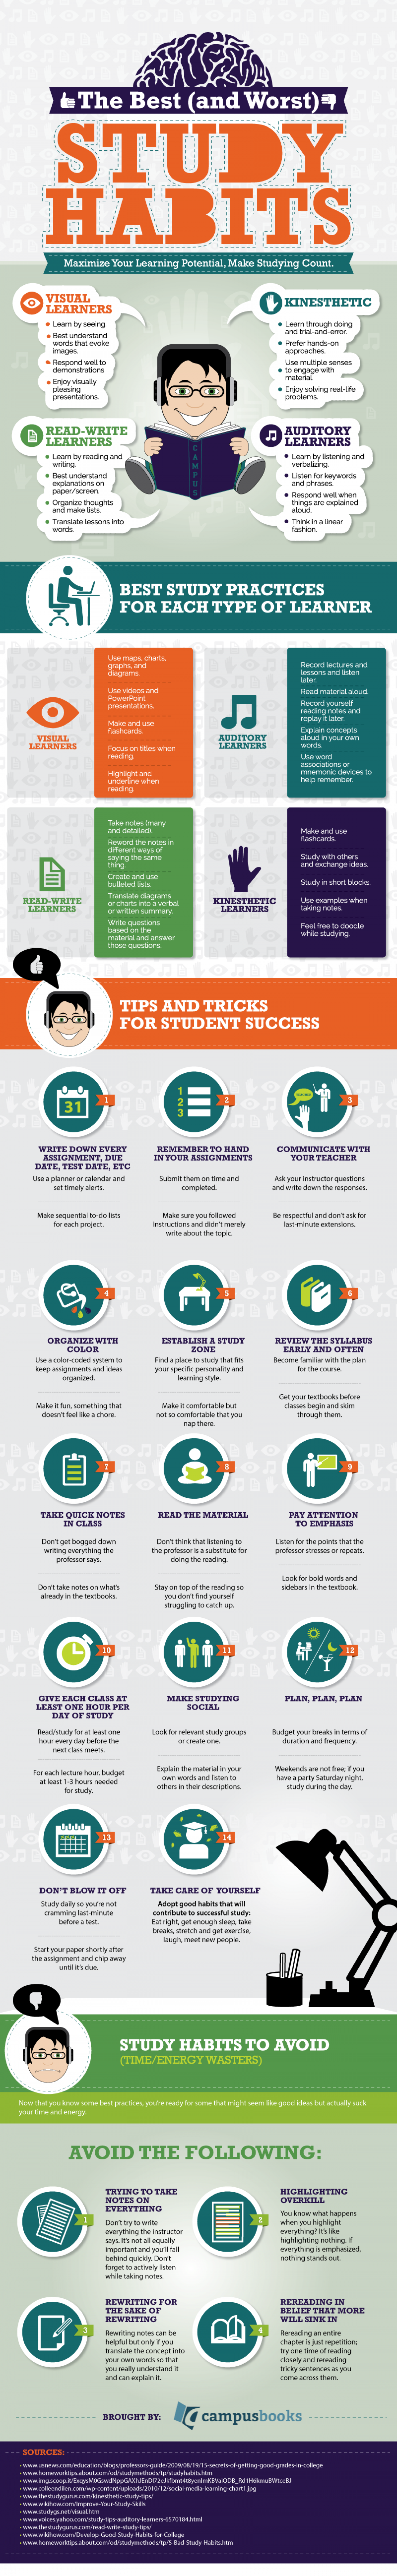 The Best (and Worst) Study Habits Infographic